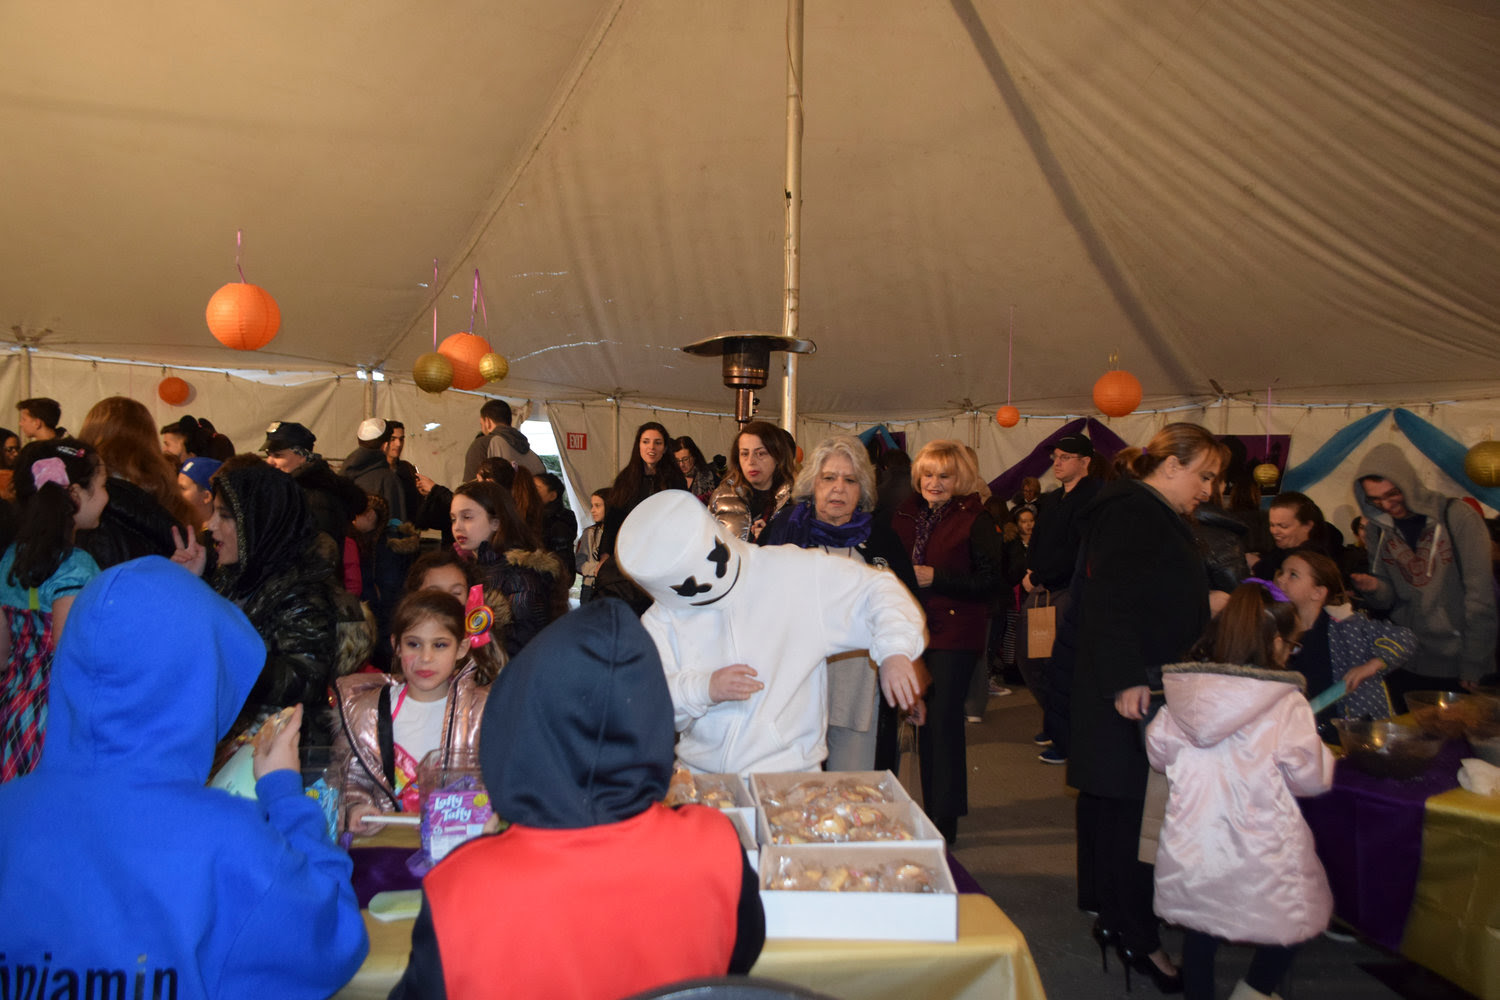 The Chabad House of Hewlett turned its backyard tent into a Persian palace for an Arabian night-themed Purim party on March 21.